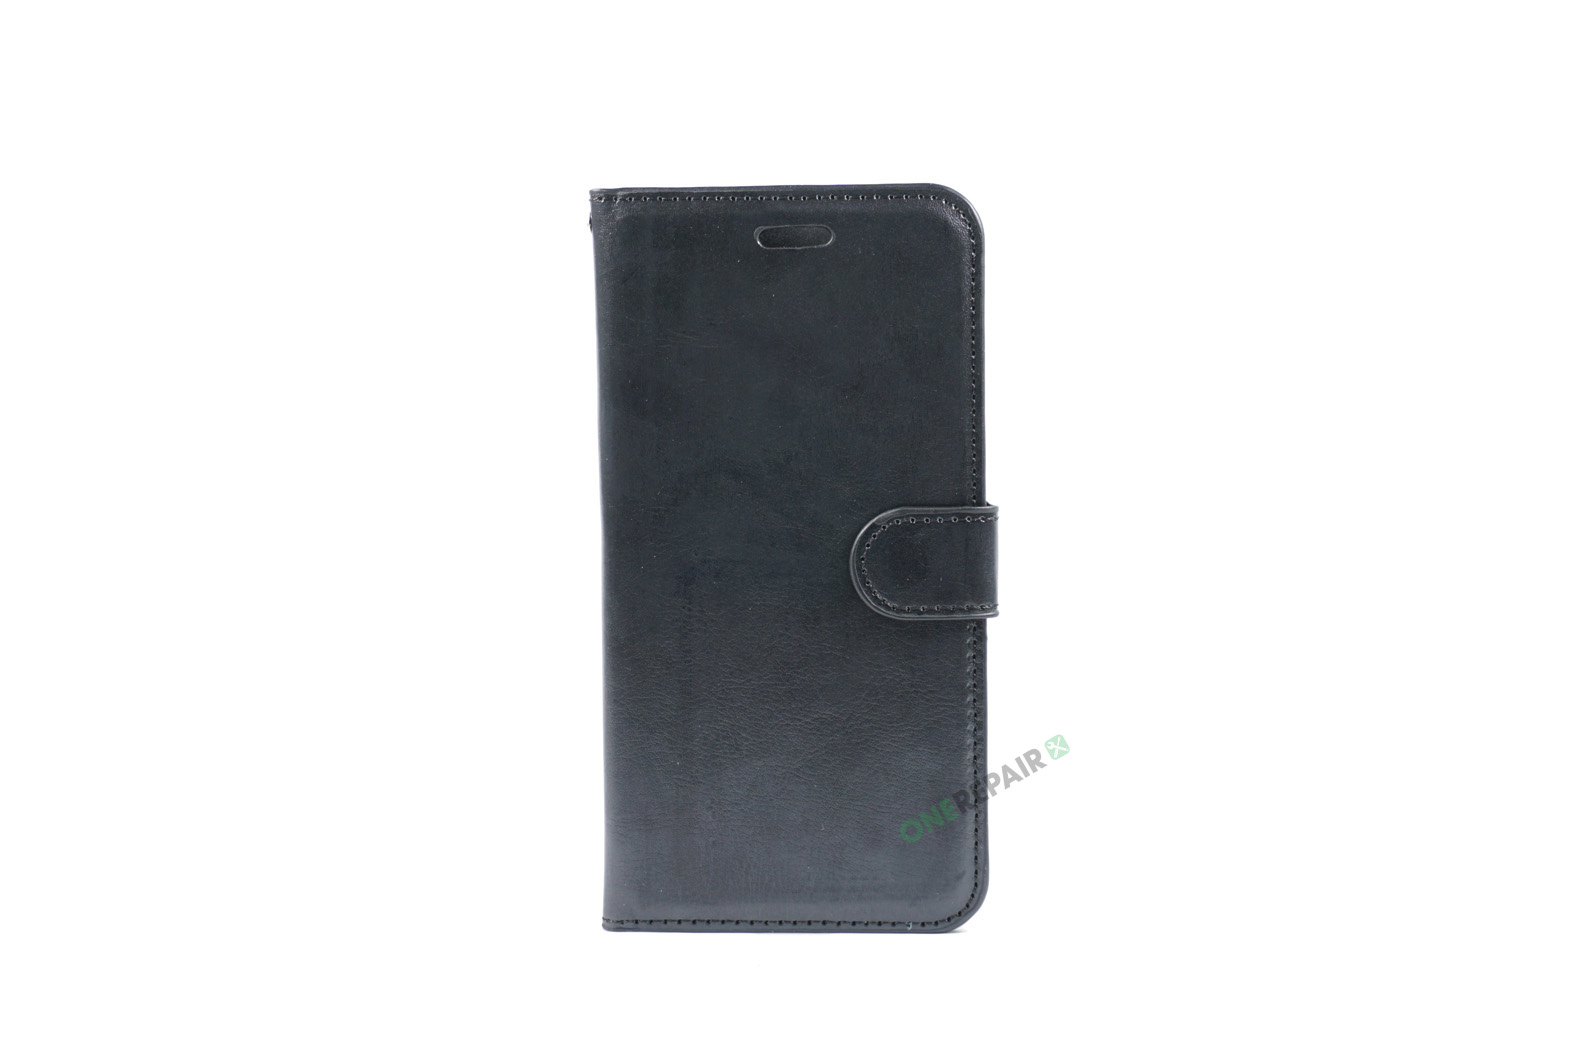 350671_iPhone_6+_6S+_Plus_Flipcover_Cover_Sort_OneRepair_WM_00001